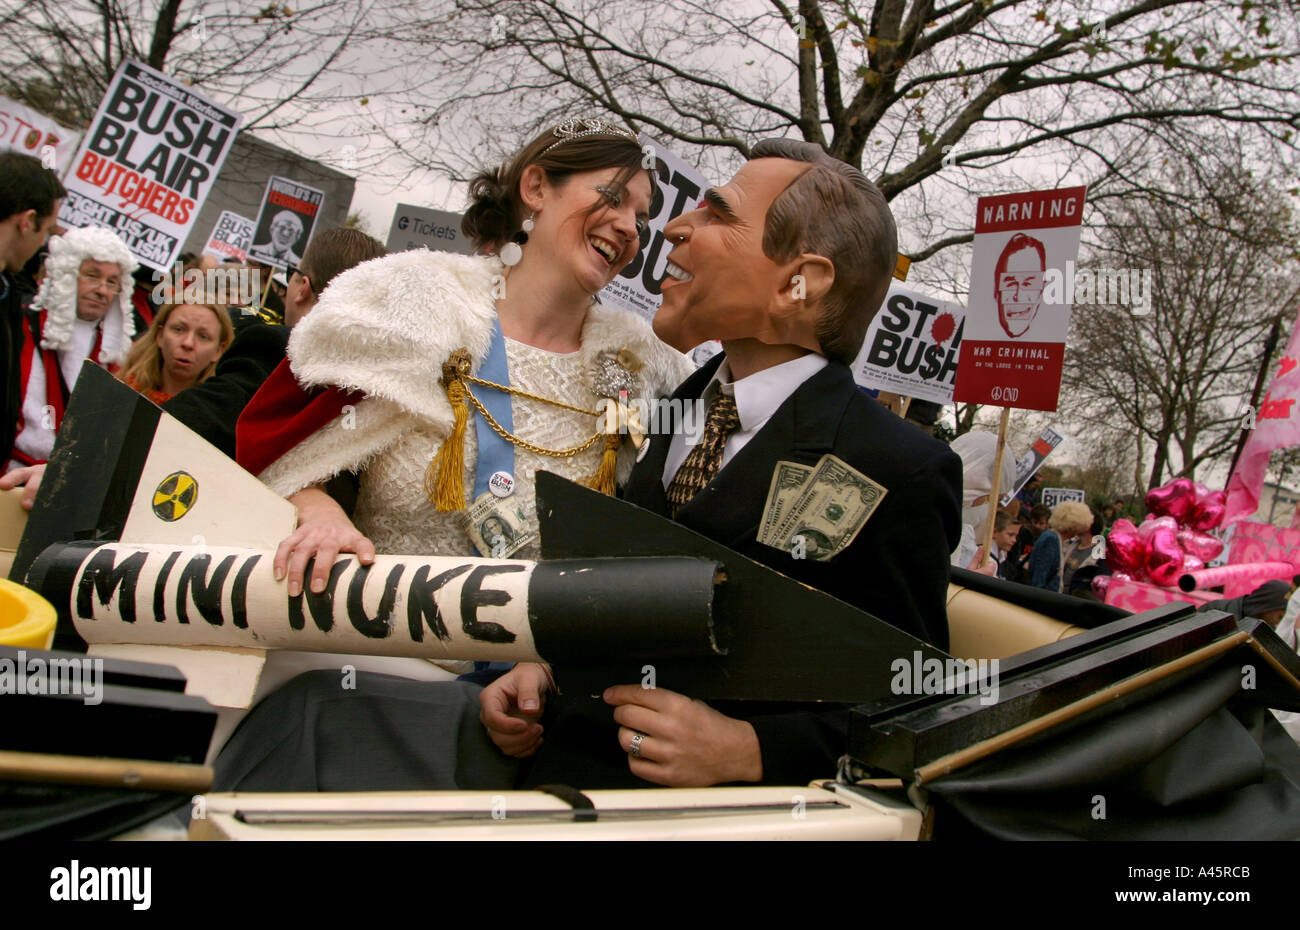 demonstrators dressed as queen elizabeth and u s president george w bush travel in a horse drawn carriage towards Stock Photo